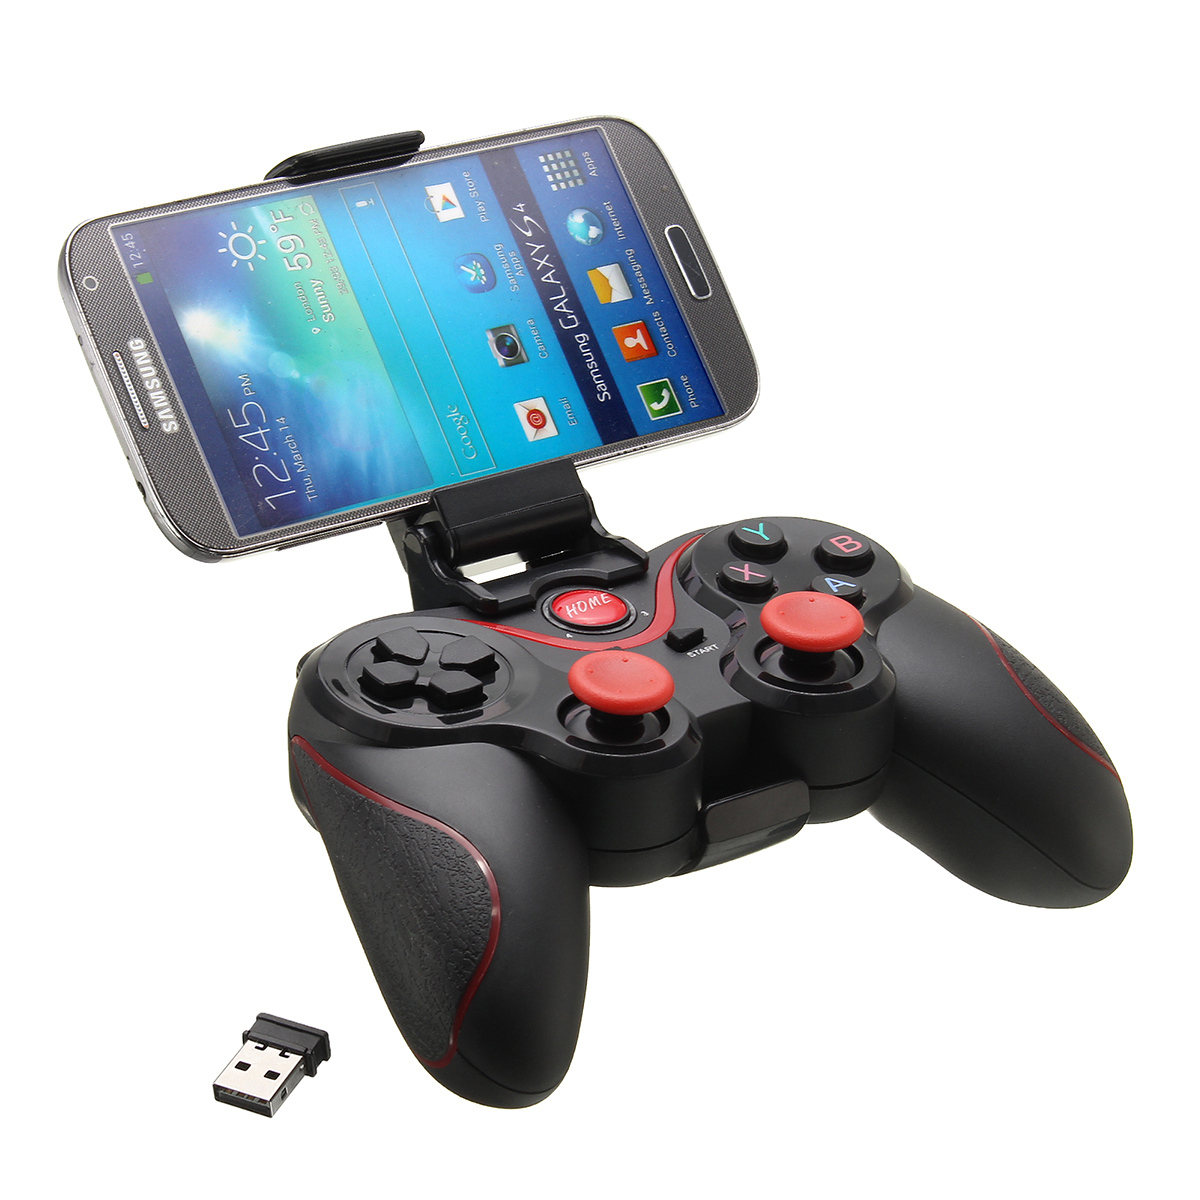 C8 Wireless Bluetooth 3.0 Game Pad Gaming Controller+Holder+Receiver for Android Smart Phone Tablet